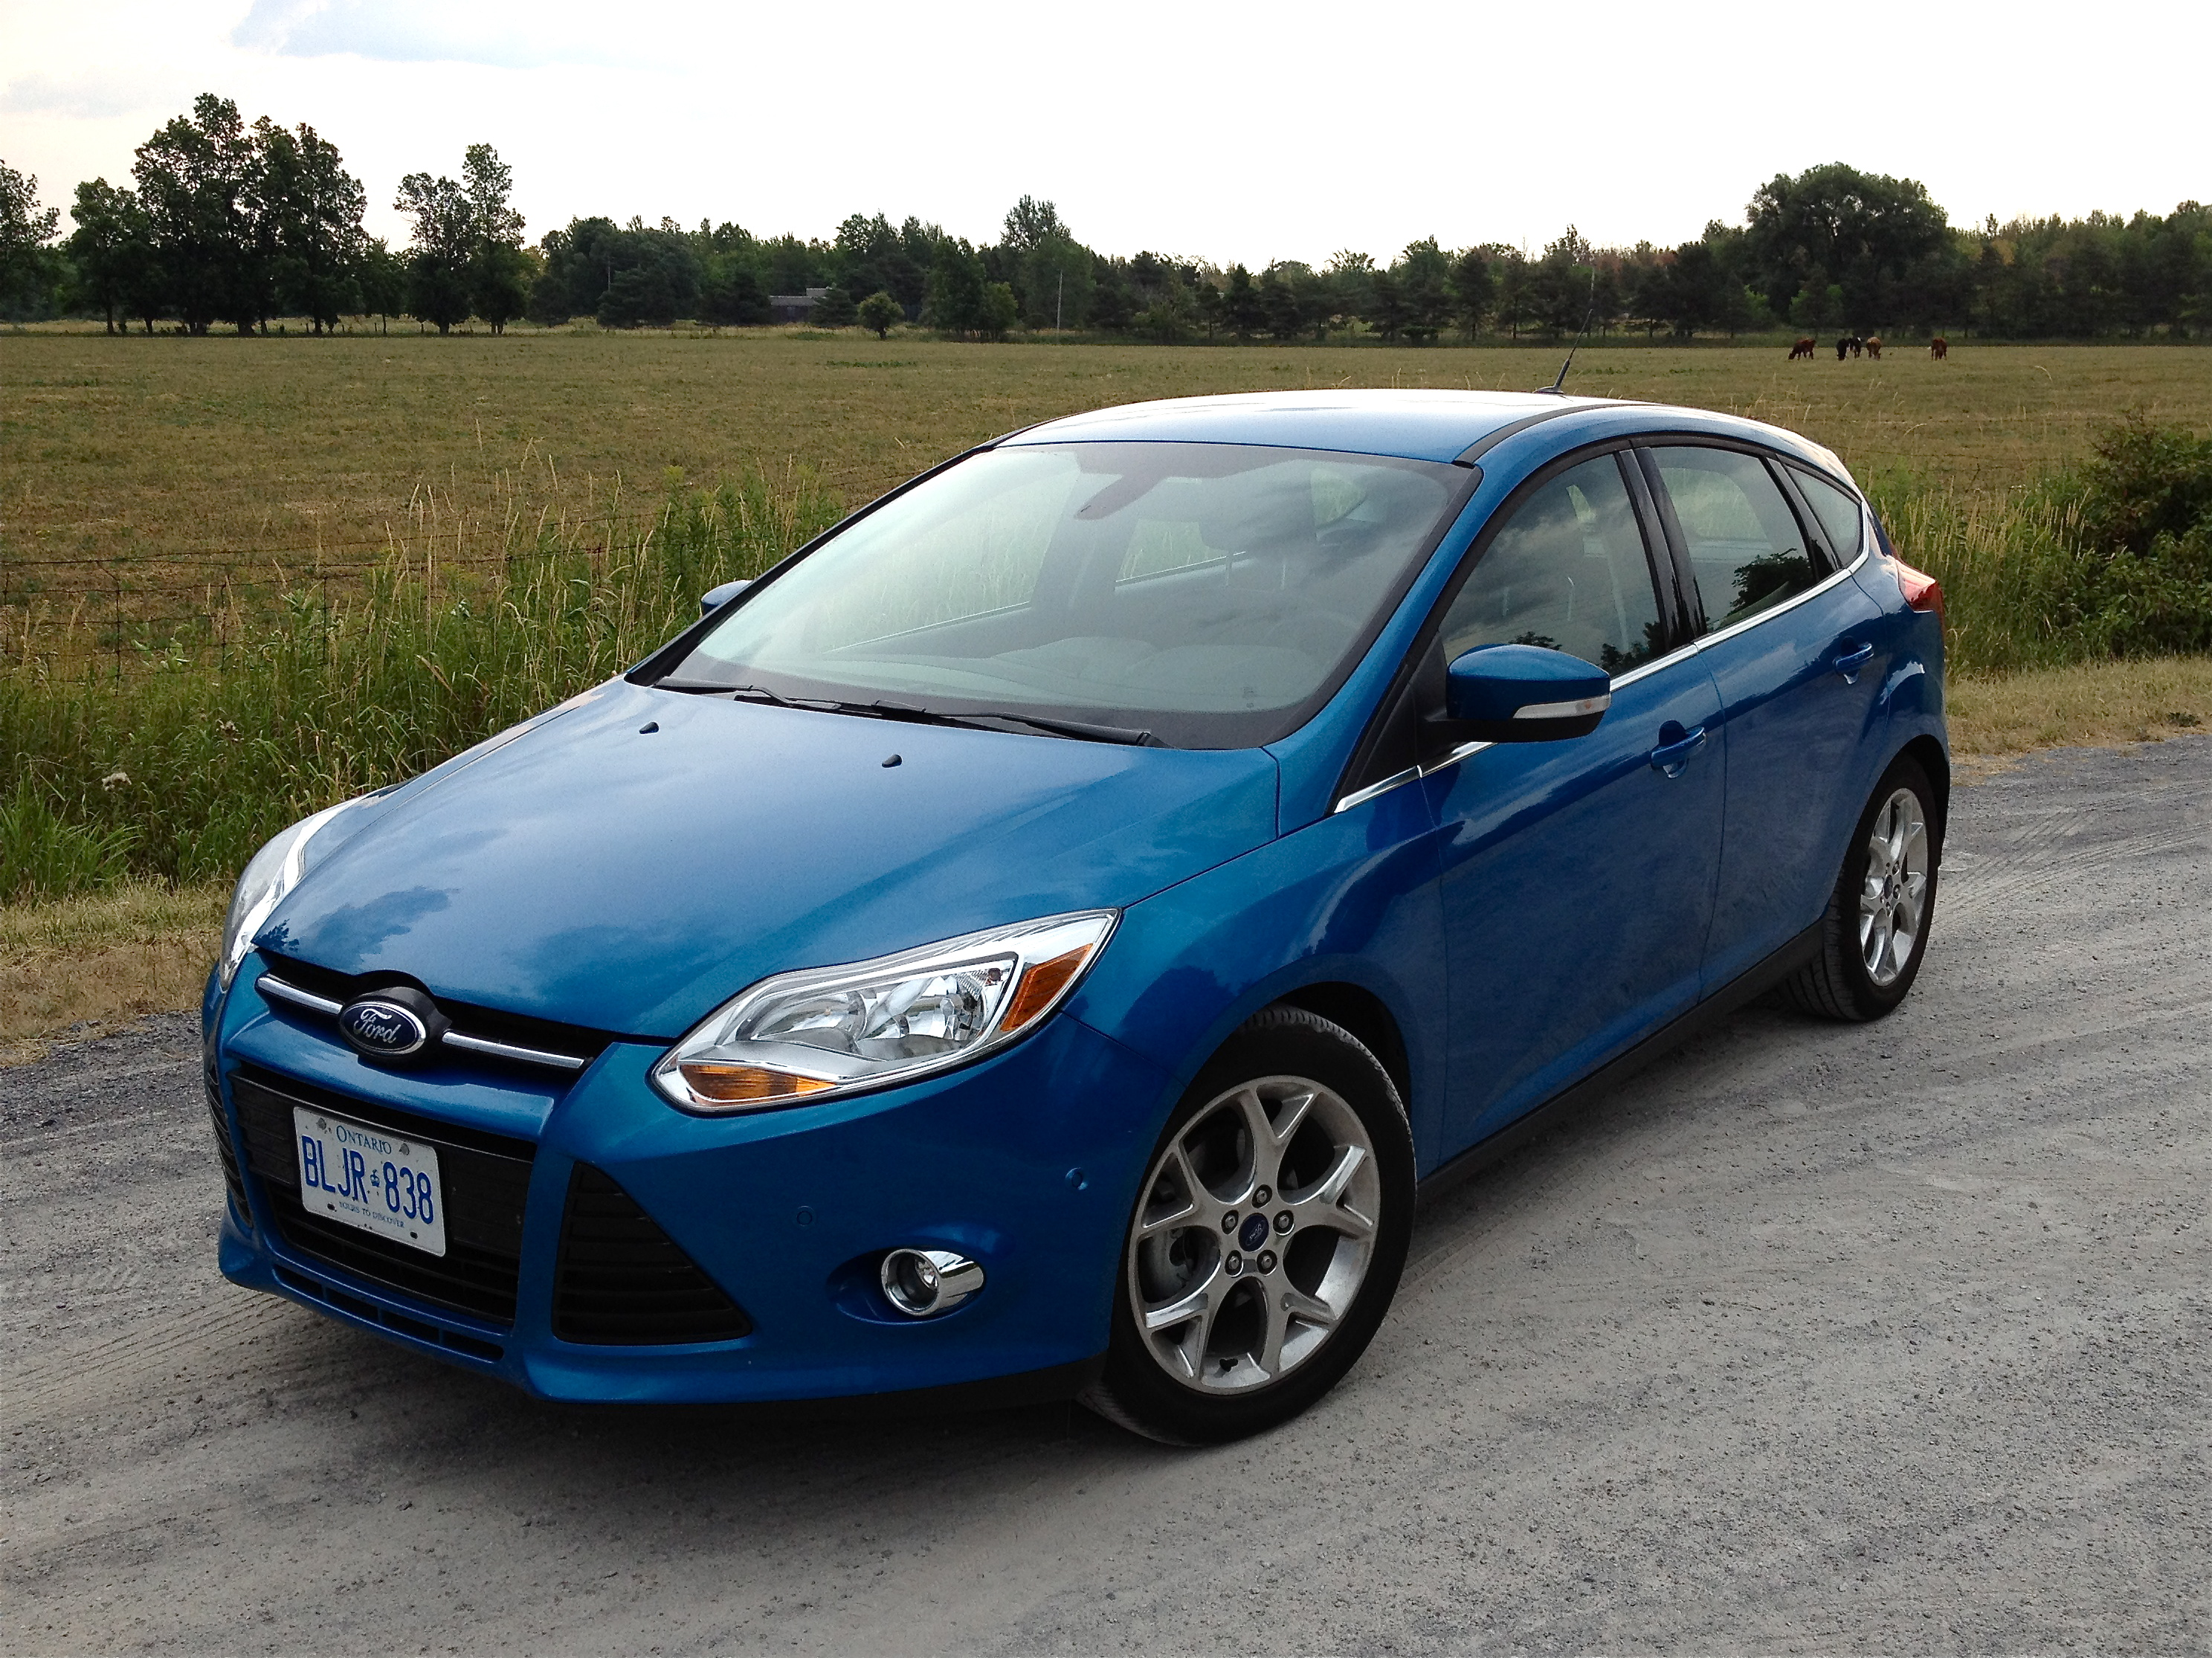 road test 2012 ford focus hatchback sel john leblanc 39 s straight six. Black Bedroom Furniture Sets. Home Design Ideas